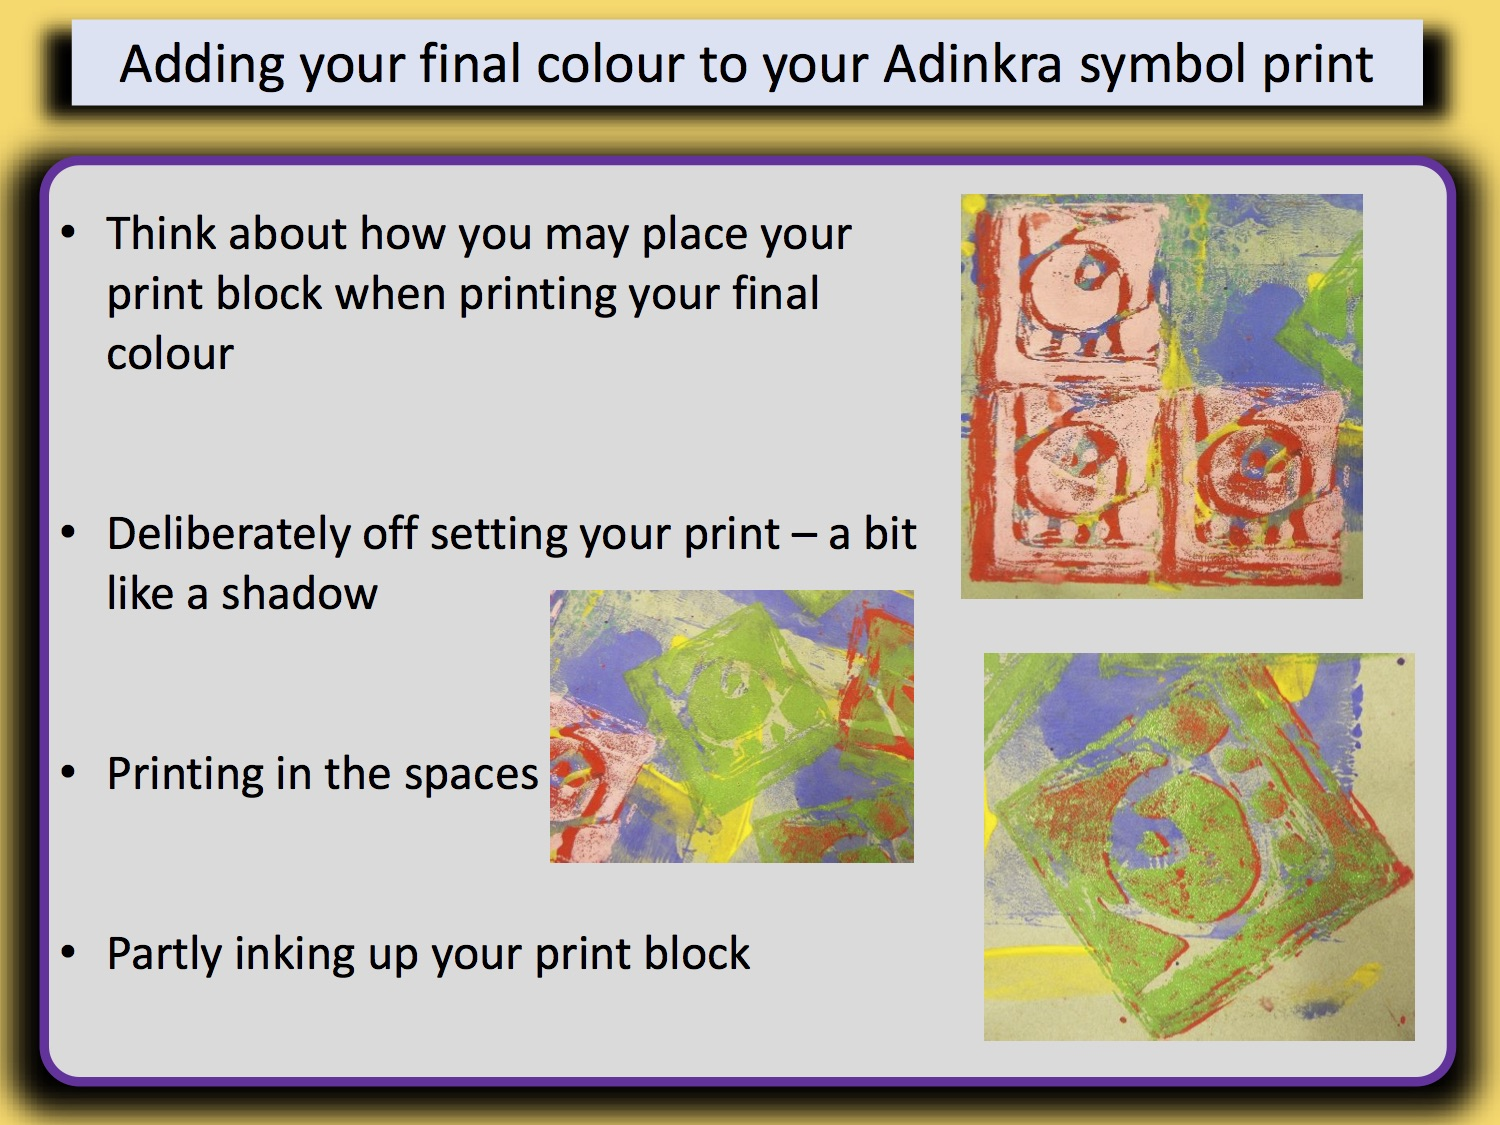 Adinkra Symbols slide copy